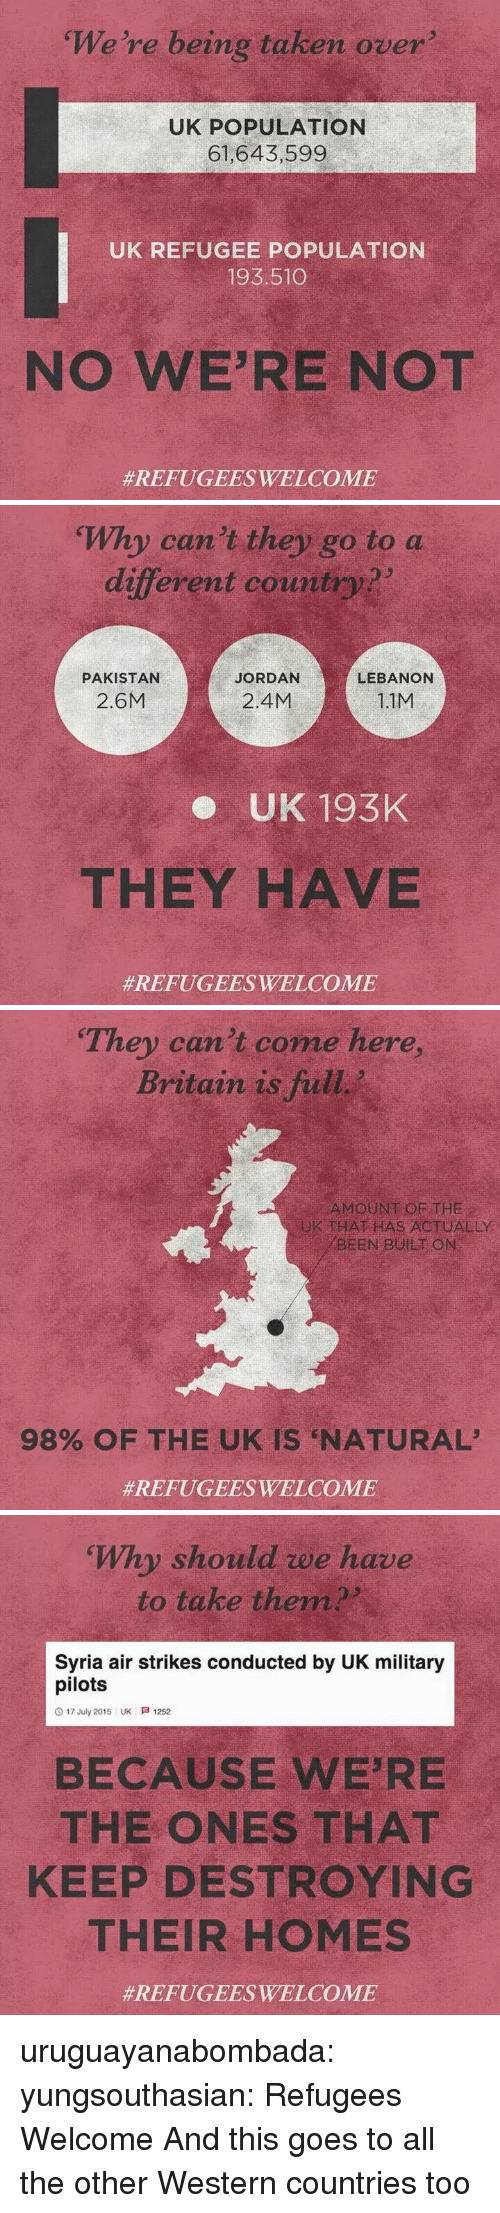 lebanon: We're being taken over  UK POPULATION  61,643,599  UK REFUGEE POPULATION  193.510  NO WE'RE NOT  #REFUGEESWELCOME   Why can't they go to a  different country?  PAKISTAN  JORDAN  LEBANON  2.6M  2.4M  1.1M  e UK 193K  THEY HAVE  #REFUGEESWELCOME   They can't come here,  Britain is full  AMOUNT OF THE  THAT HAS ACTUALLY  BEENBUİLT ON  98% OF THE UK IS 'NATURAL'  #REFUGEESWELCOME   Why should we have  to take them  Syria air strikes conducted by UK military  pilots  O 17 July 2015 UK 1252  BECAUSE WE'RE  THE ONES THAT  KEEP DESTROYING  THEIR HOMES  uruguayanabombada: yungsouthasian: Refugees Welcome  And this goes to all the other Western countries too